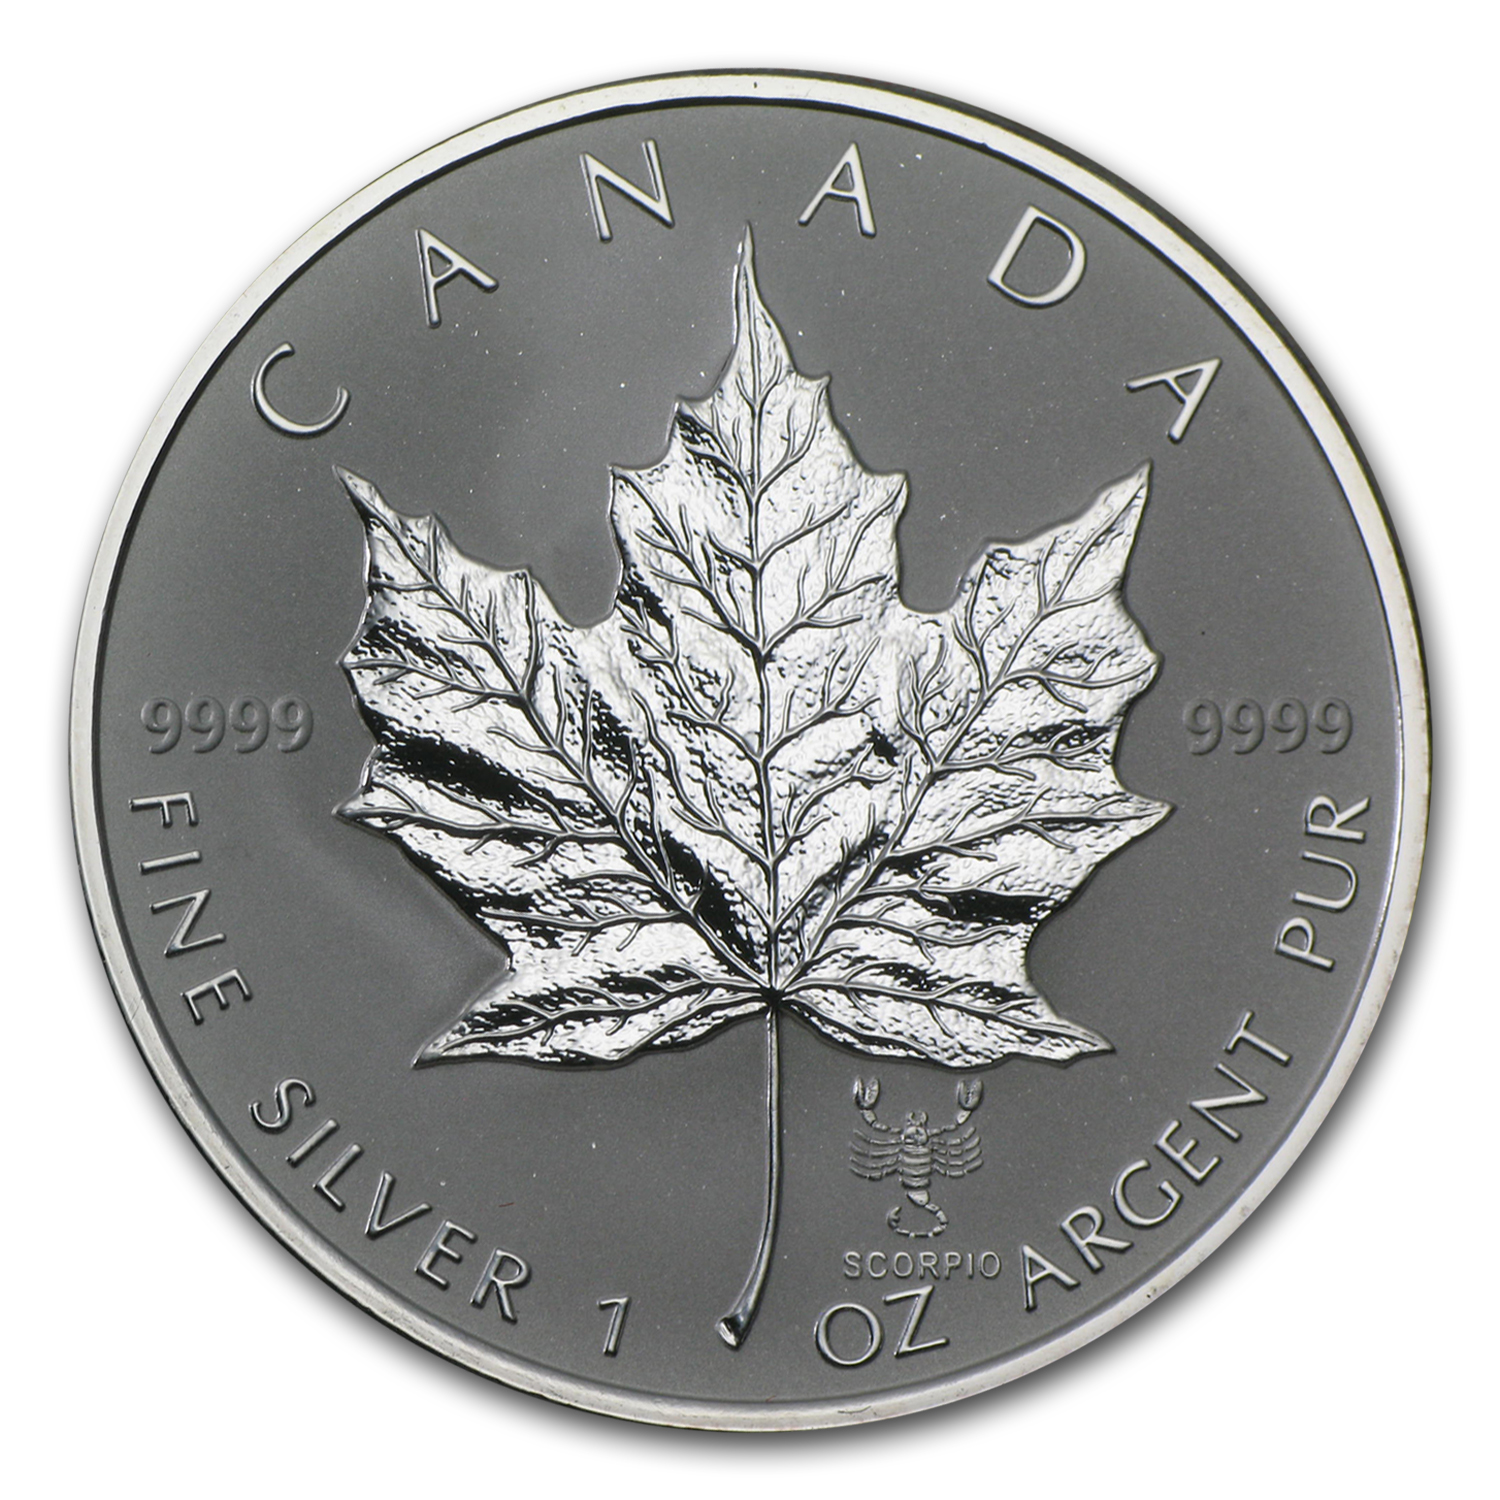 2004 Canada 1 oz Silver Maple Leaf Scorpio Zodiac Privy